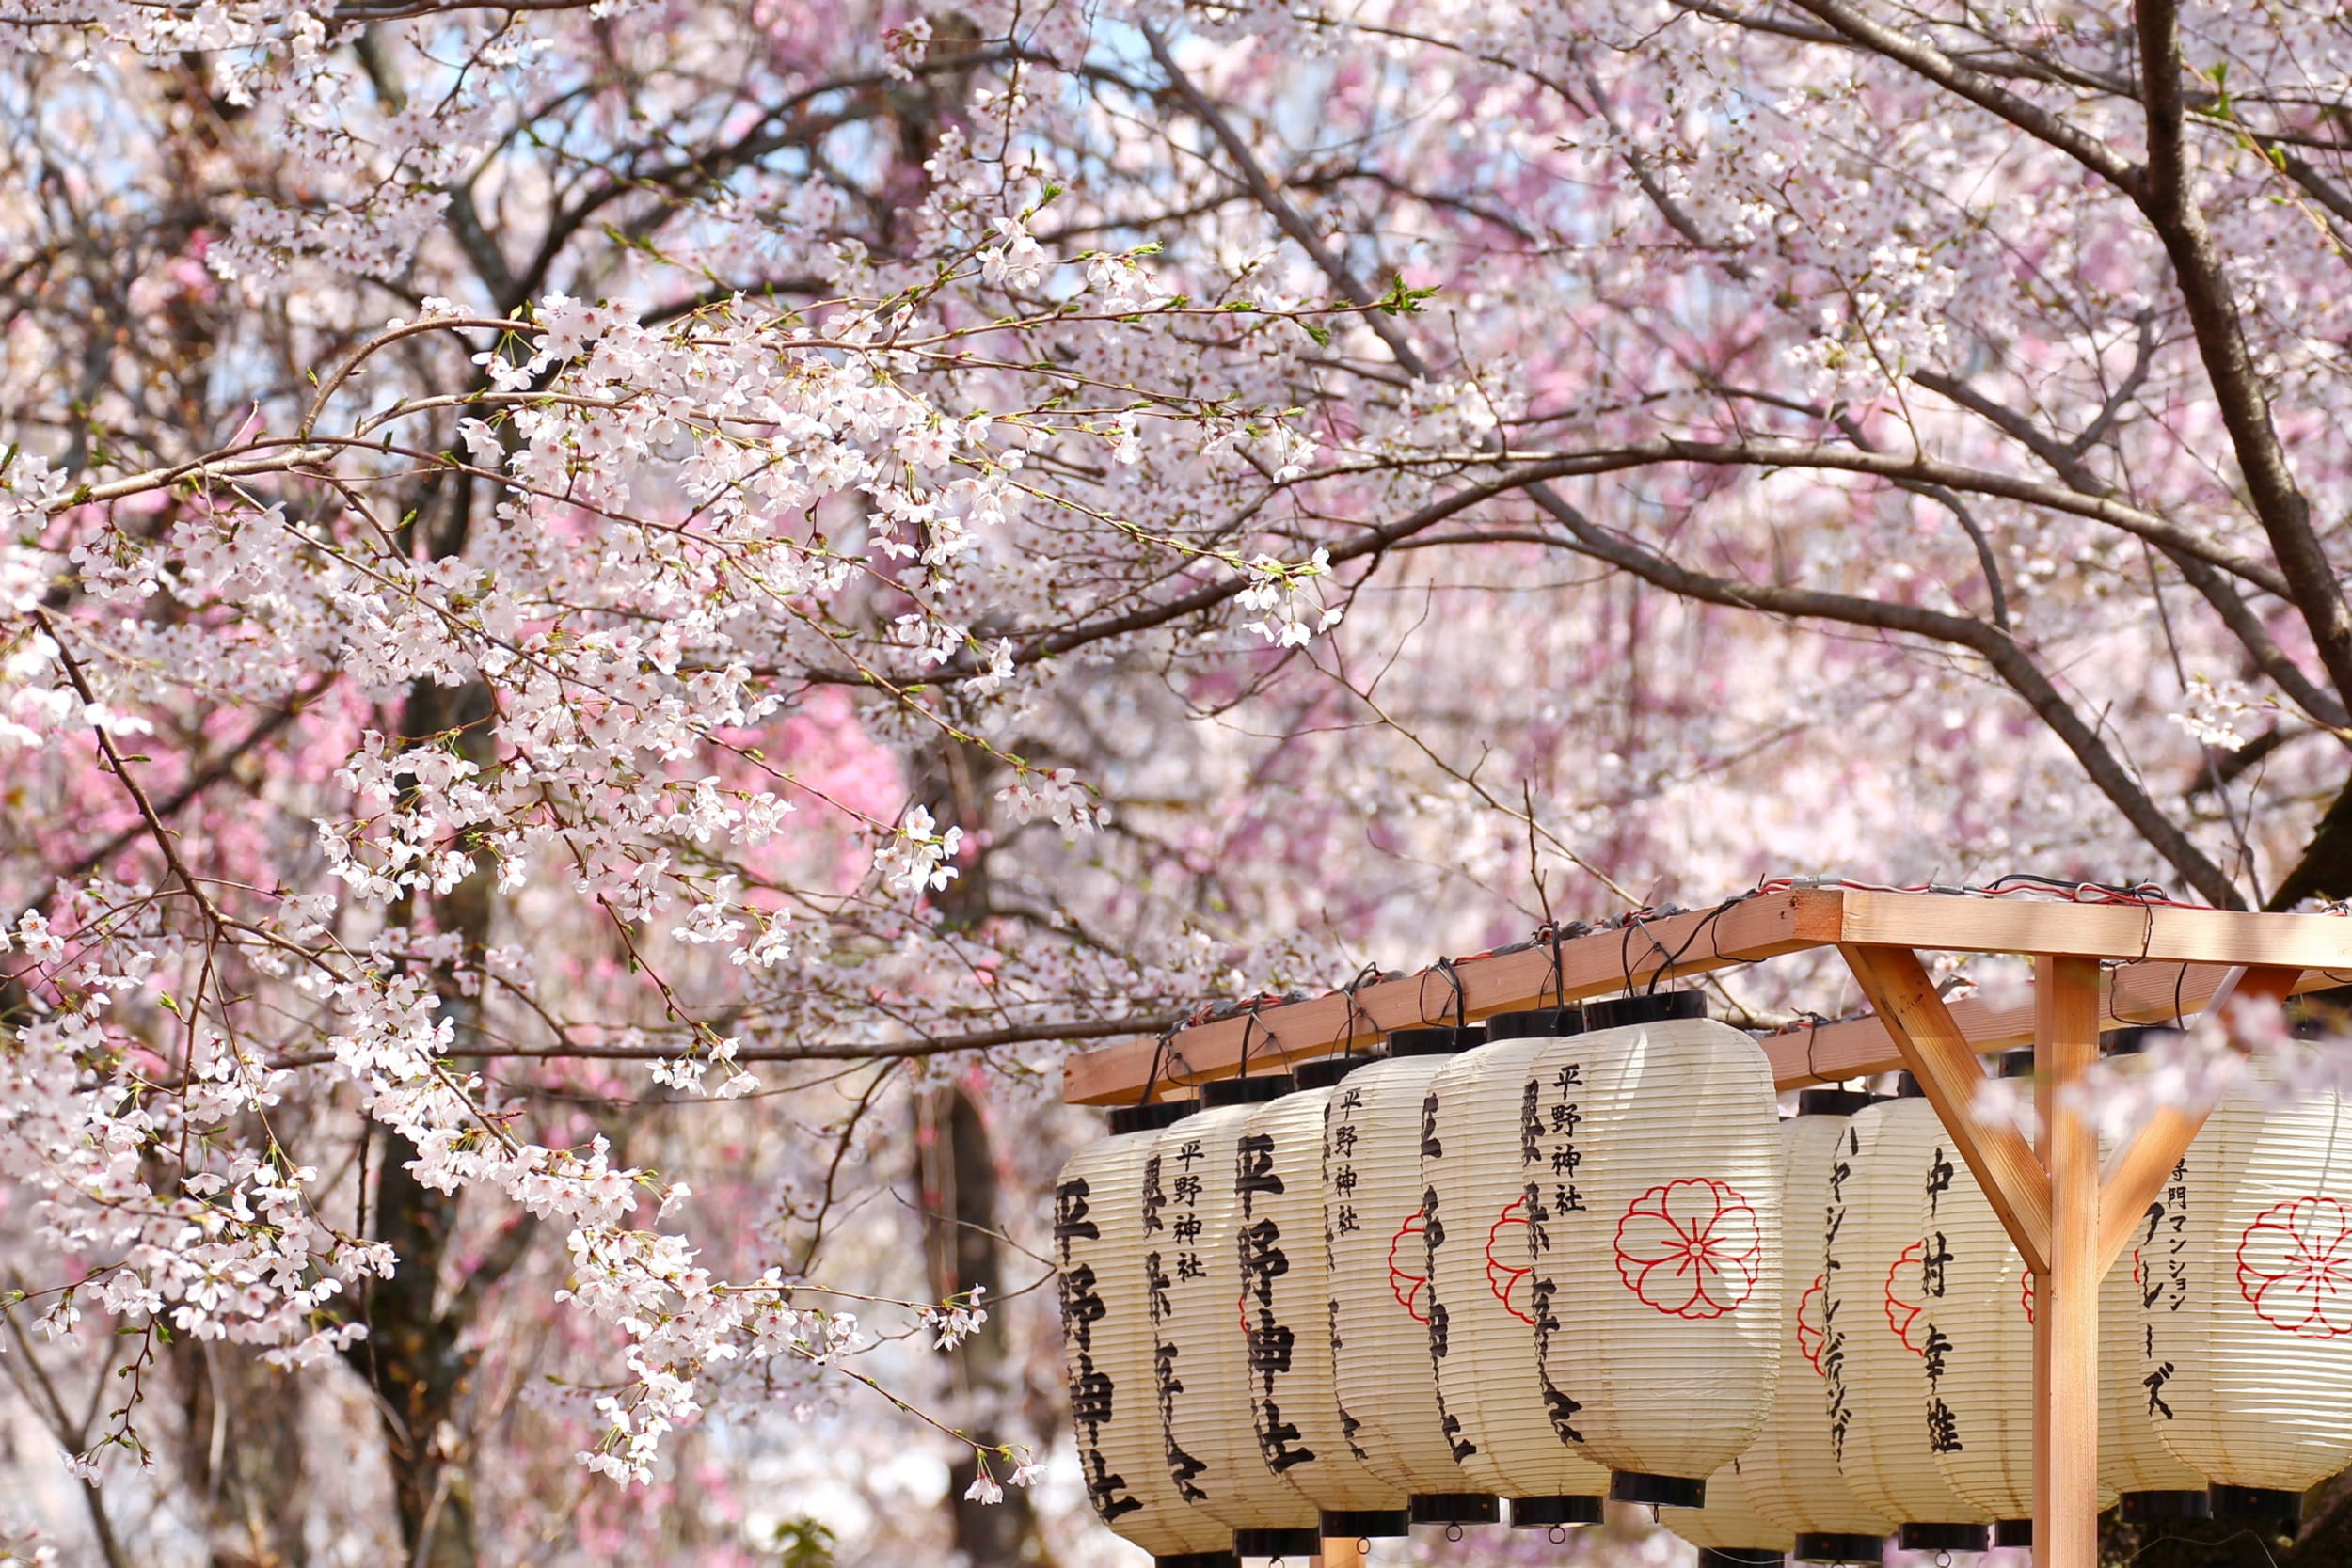 Where And When To See Cherry Blossom Trees In Japan Tokyo And Kyoto Places To See Sakura Flowers And Schedule Wego Com